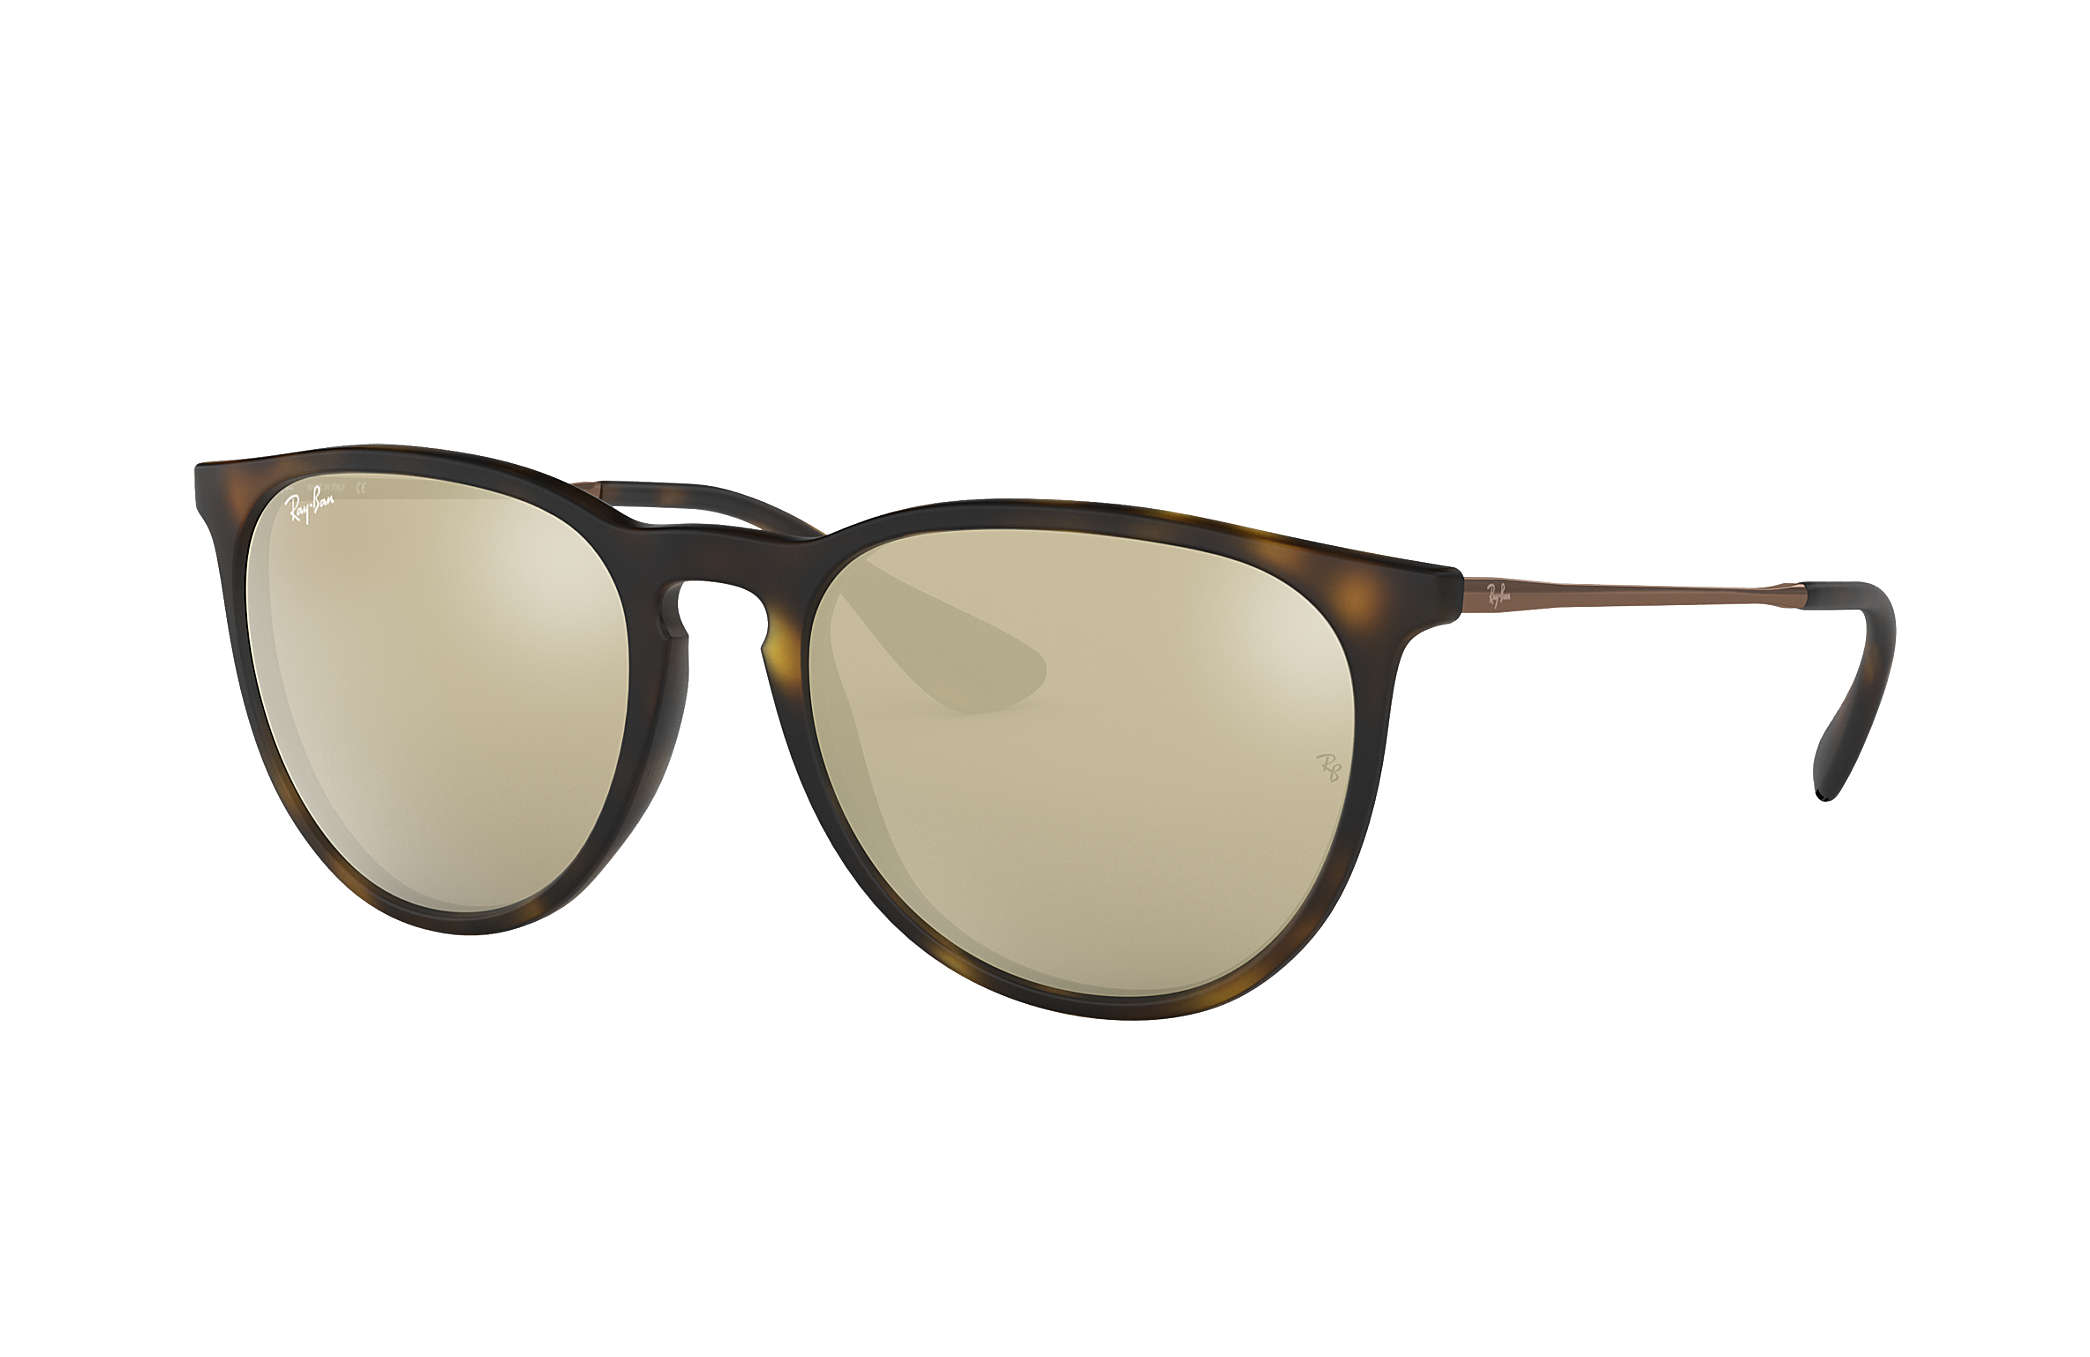 985e8b823b1 Ray-Ban Erika  collection RB4171 Tortoise - Nylon - Gold Lenses ...